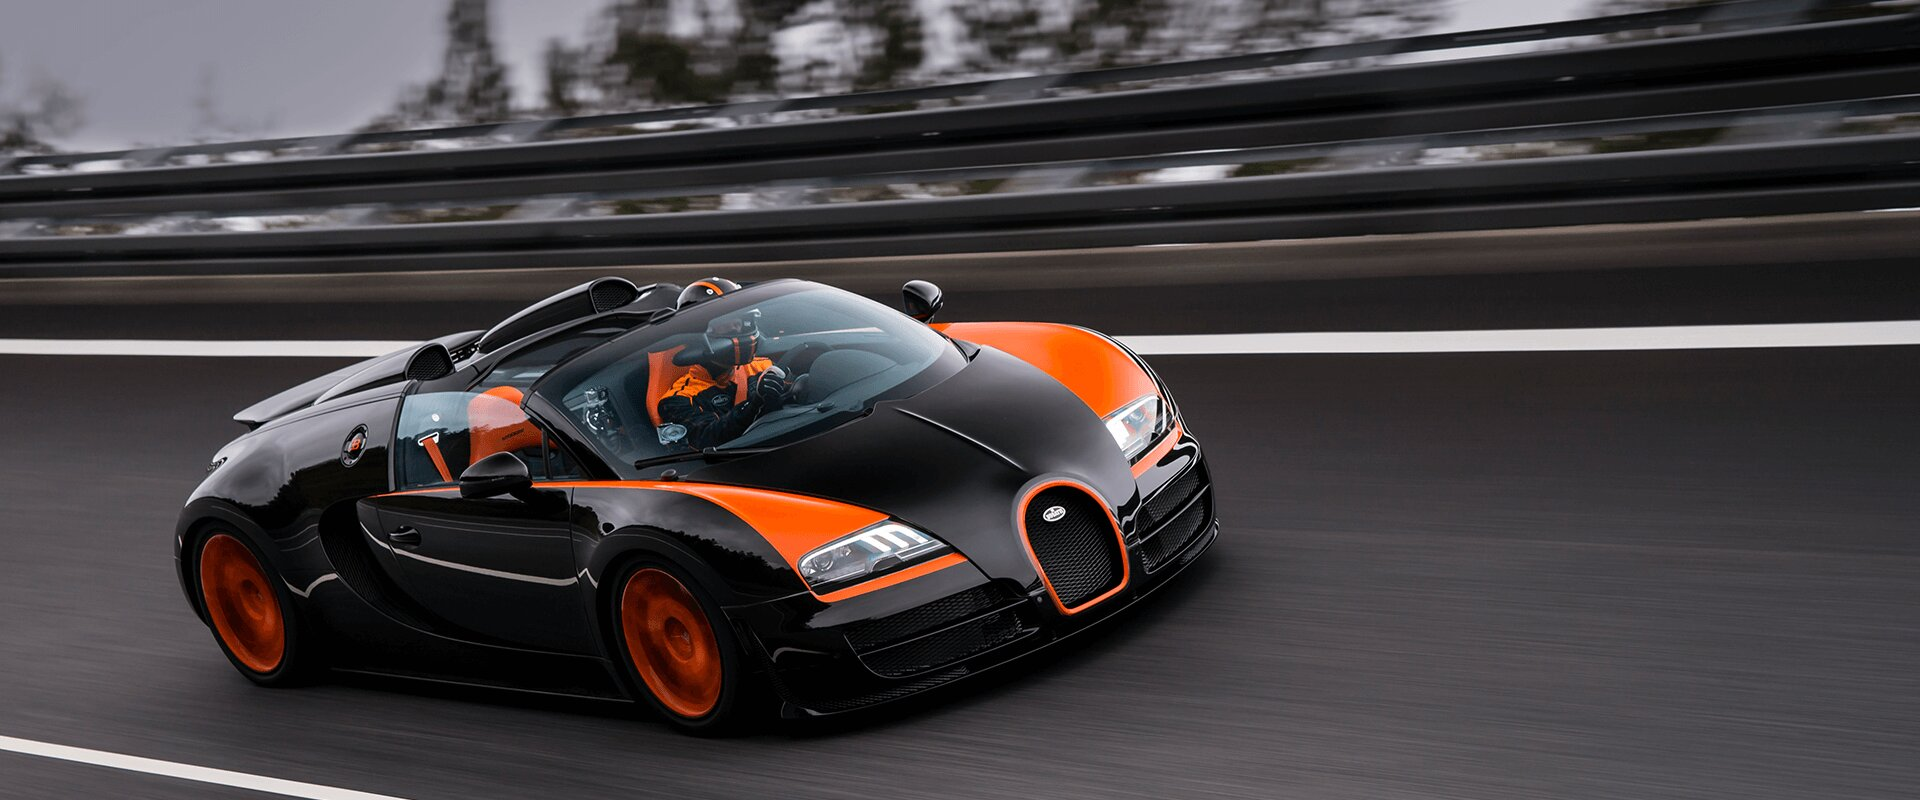 Bugatti Veyron Technique